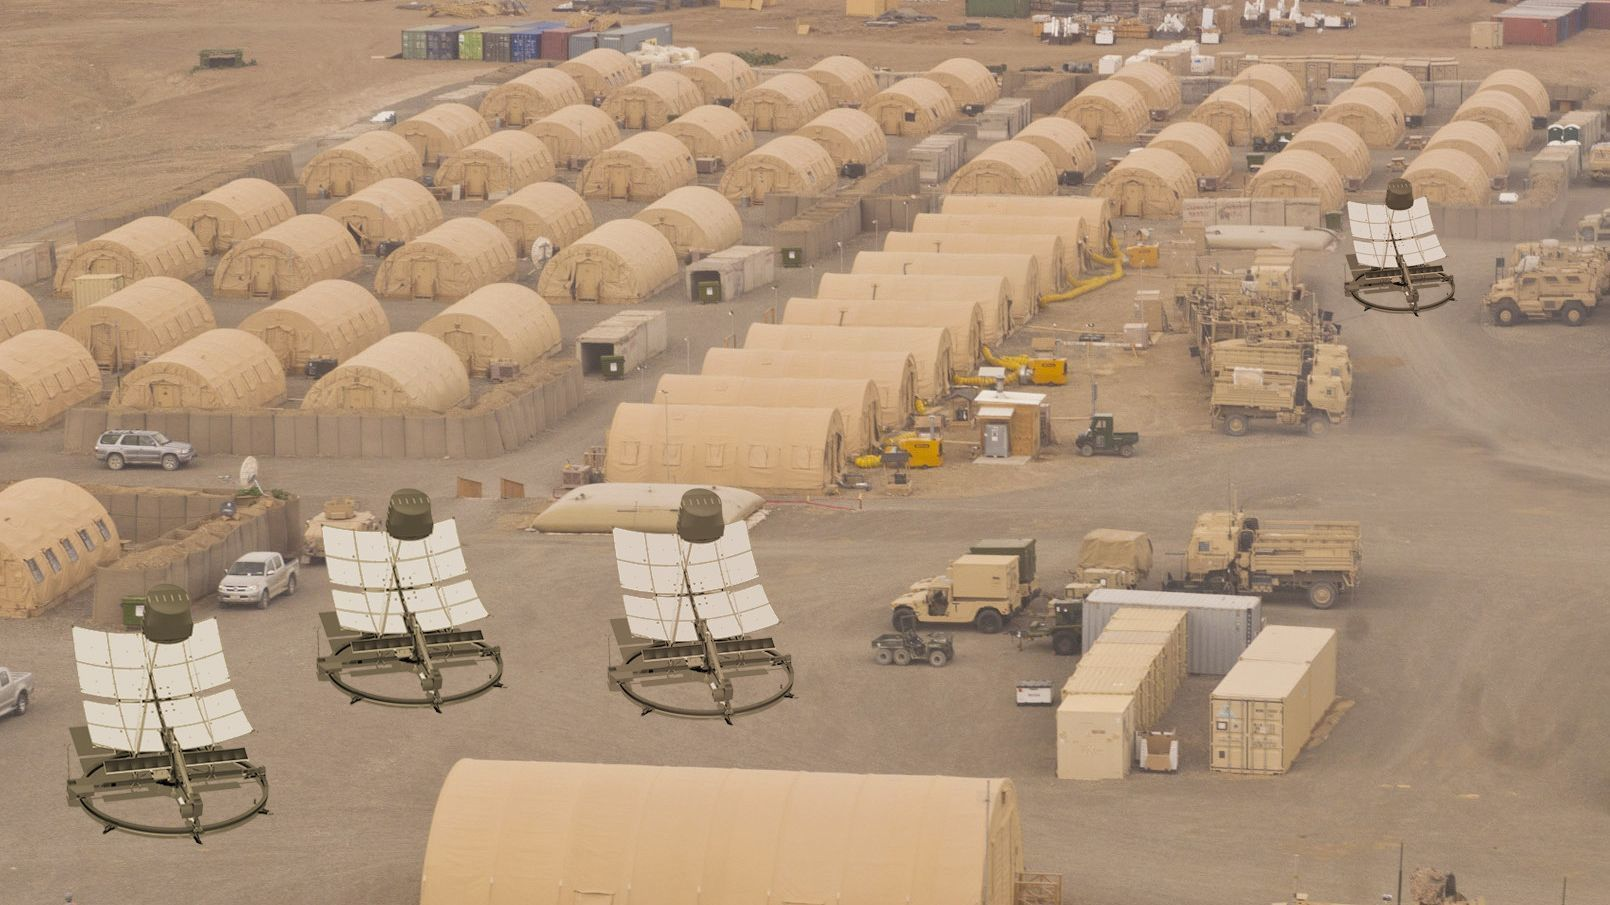 This rendering shows future potential uses of the Helia solar storage device at an Army Forward Operating Base.